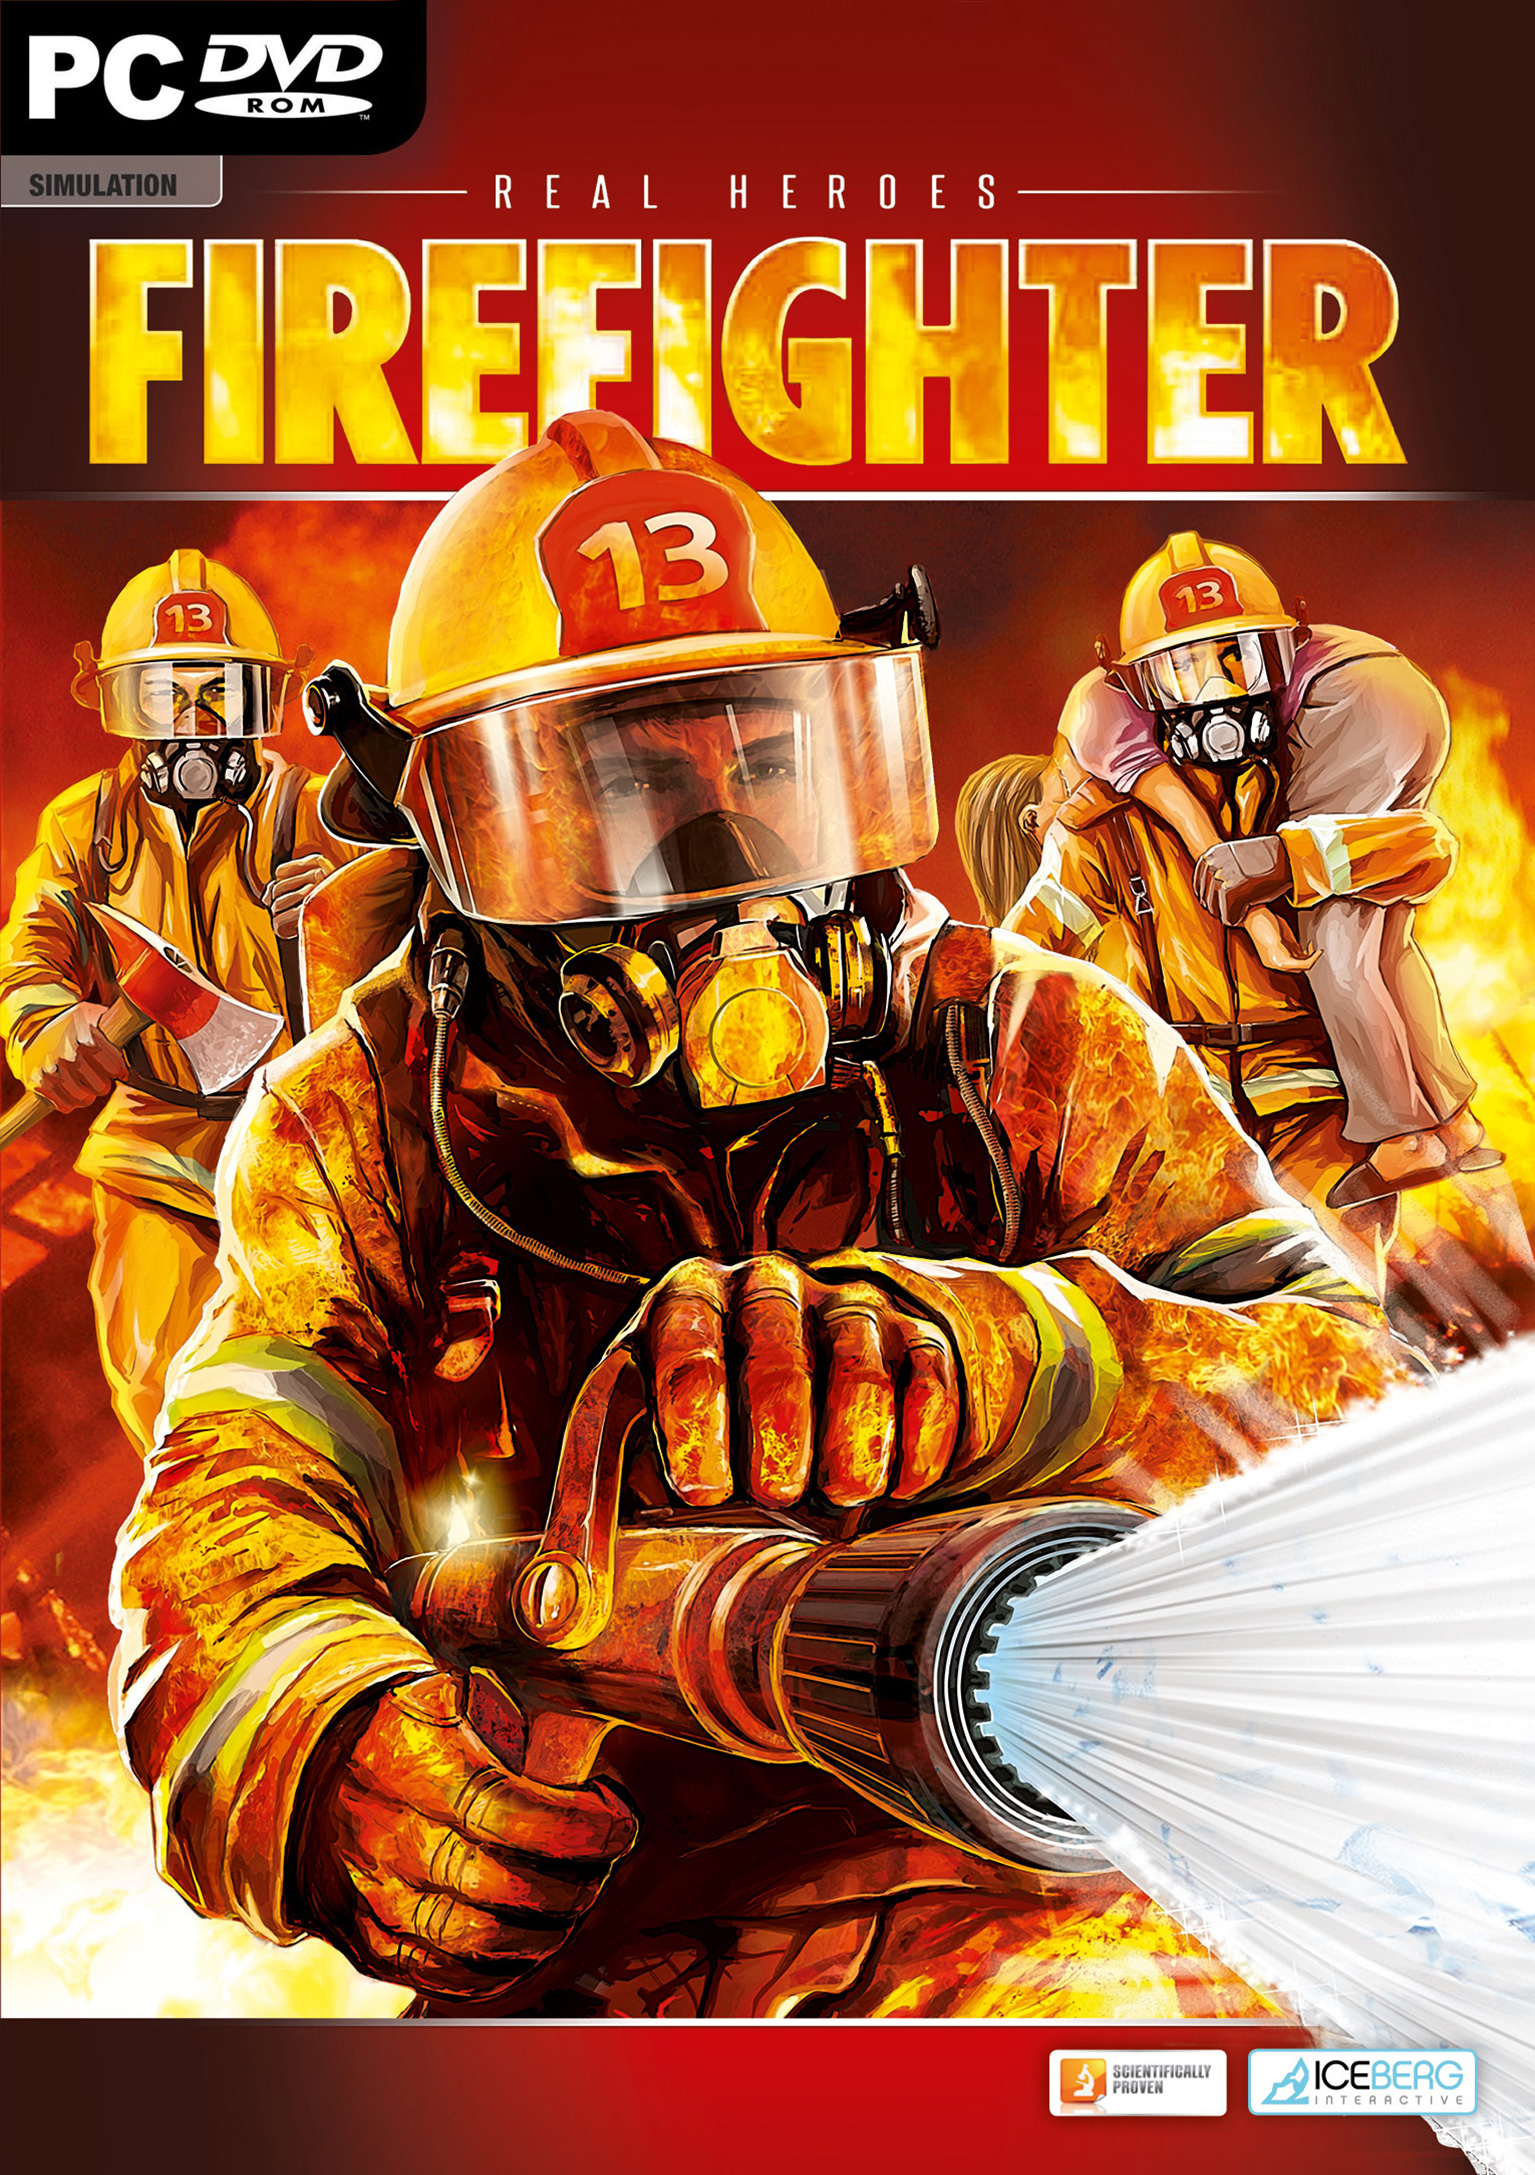 Real Heroes: Firefighter - predný DVD obal